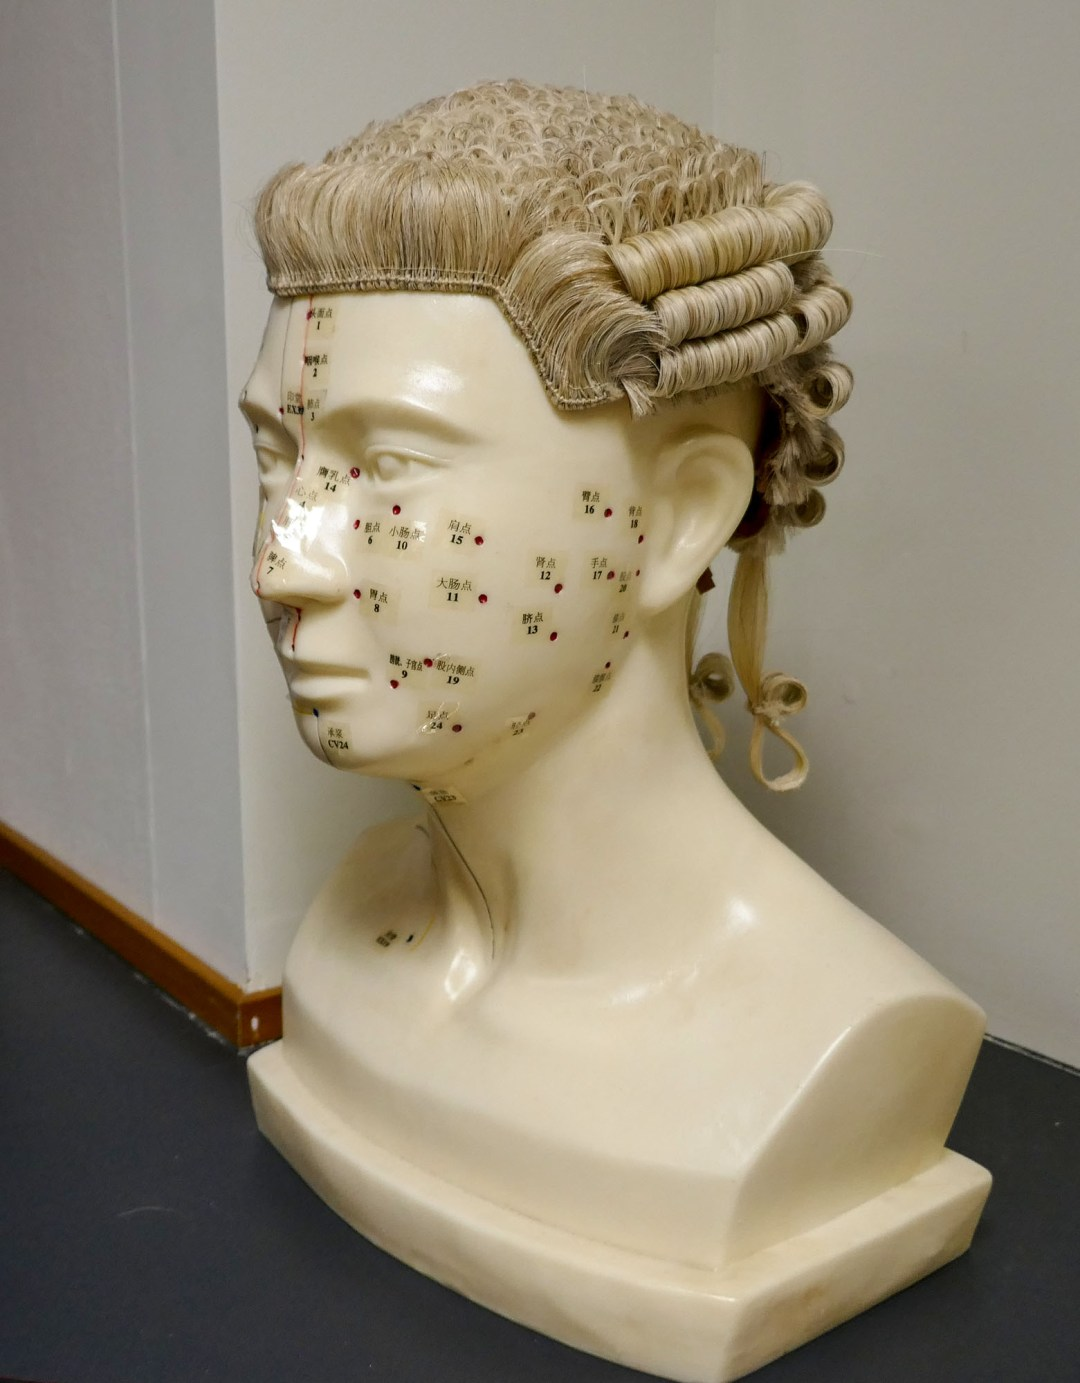 Barrister's Wig stand